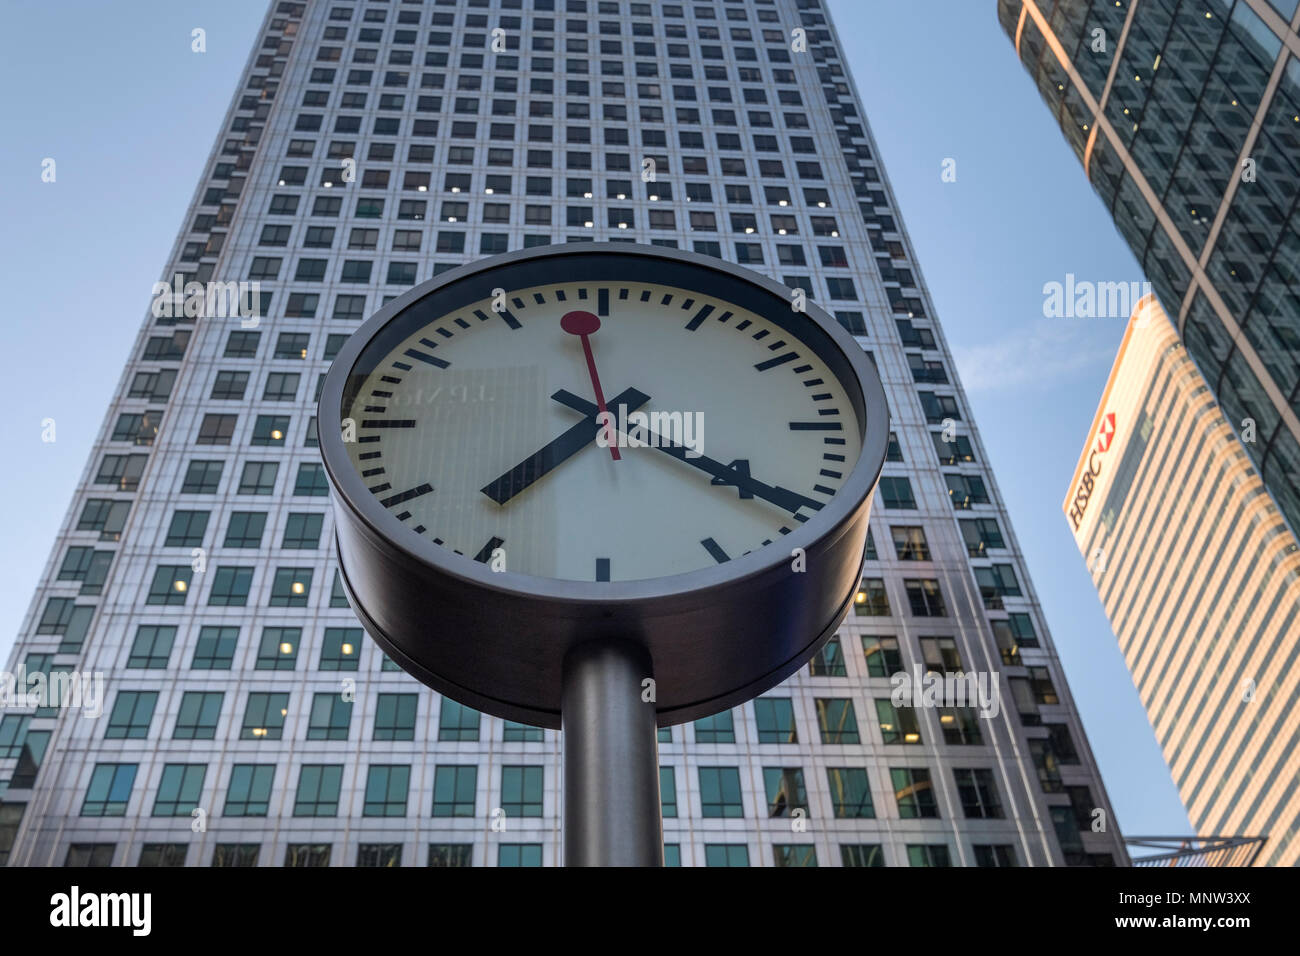 Canary Wharf Clock backed by 1 Canada Square Building, Reuters Plaza, Canary Wharf, London, England, UK - Stock Image